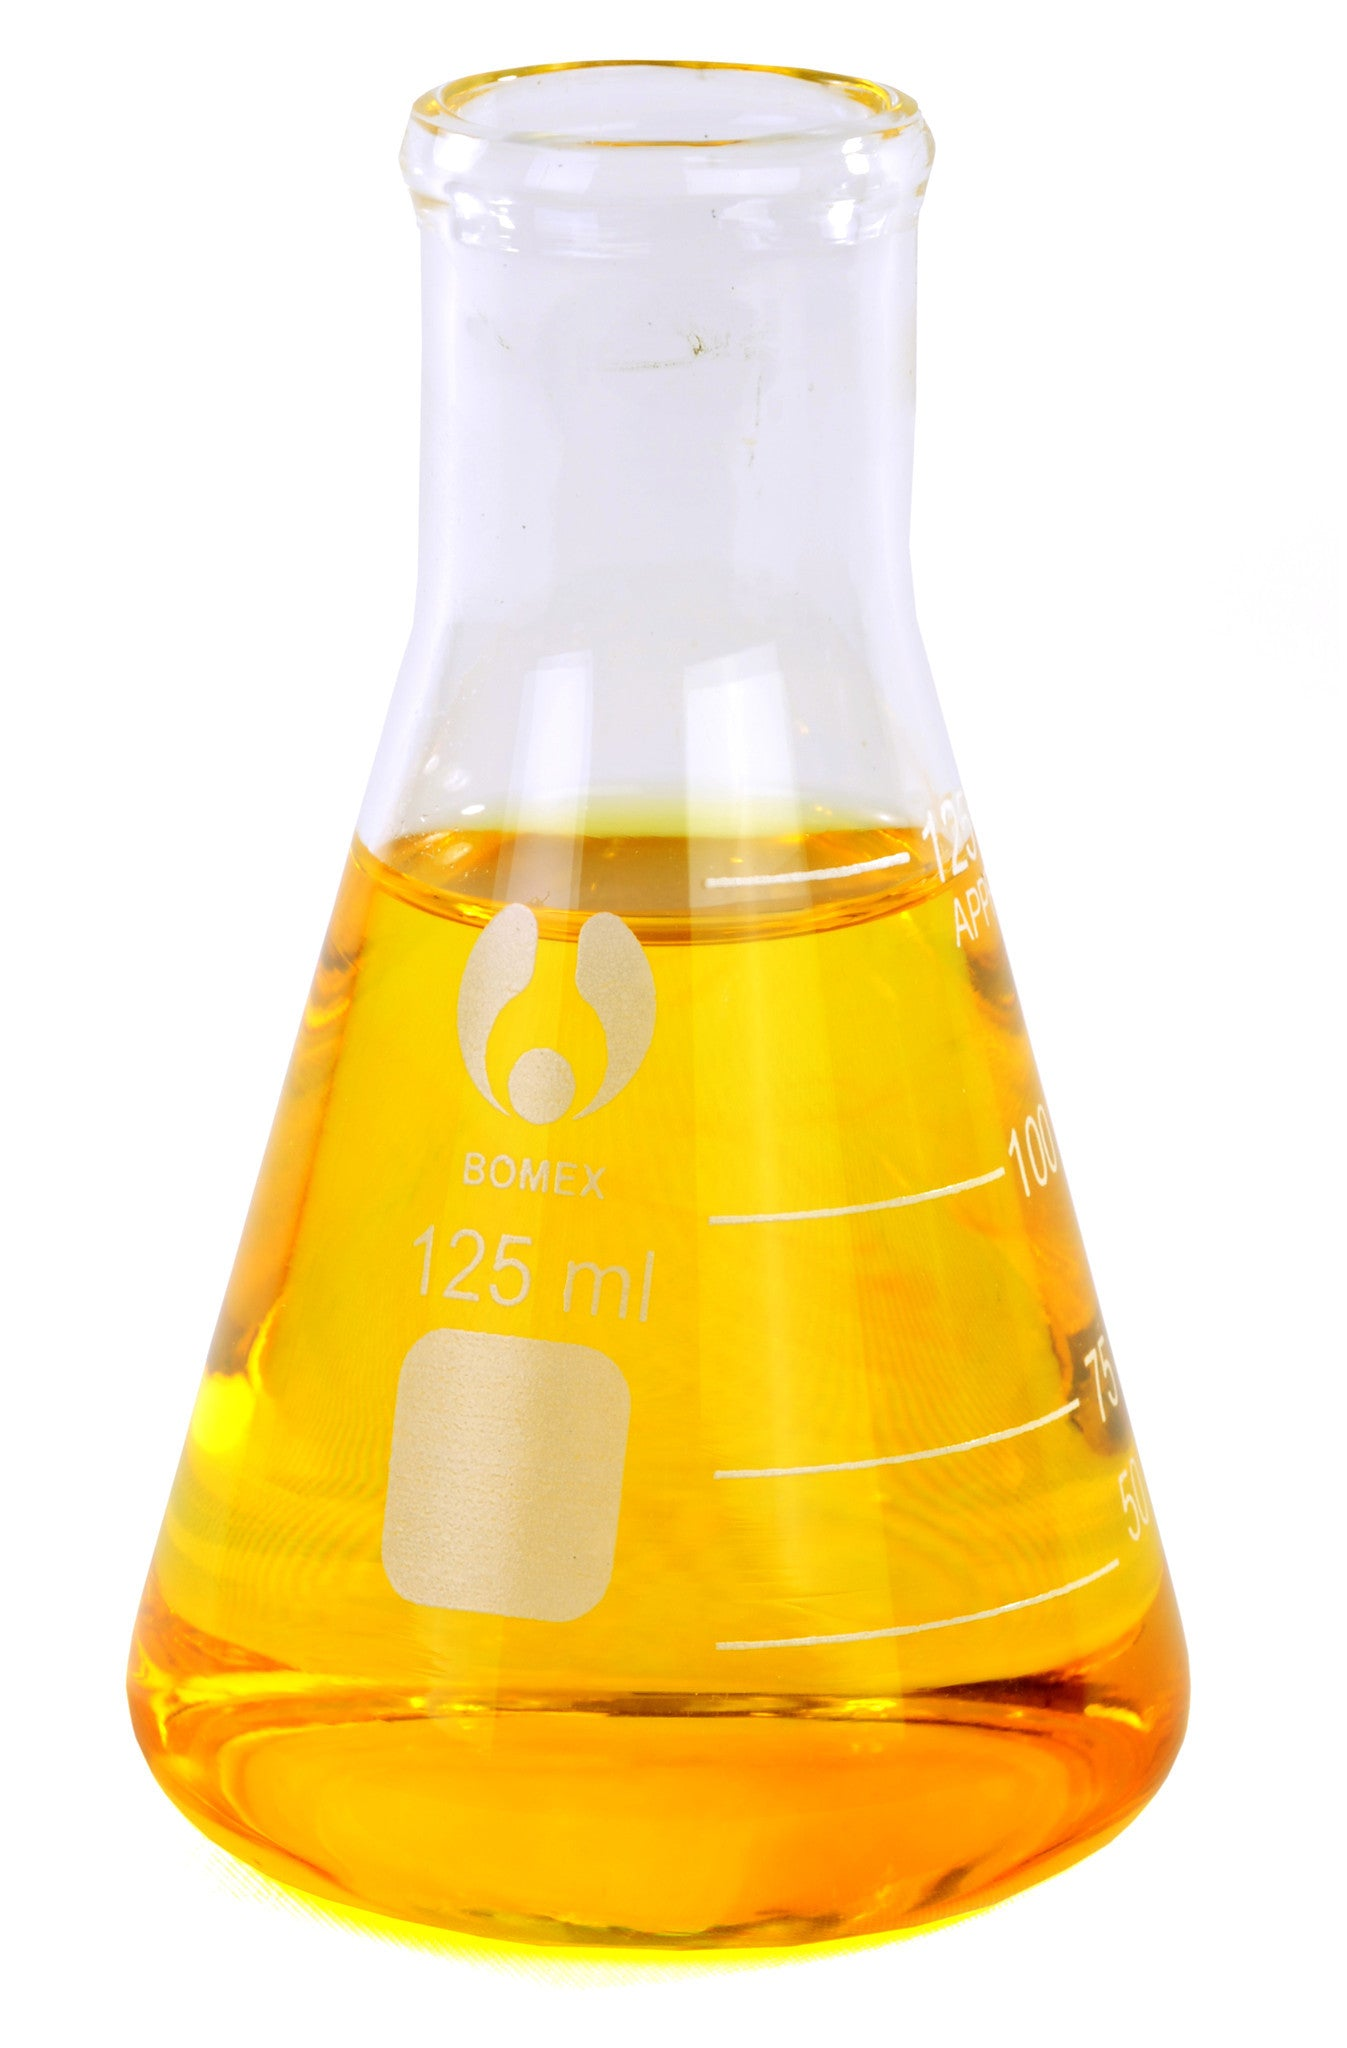 Bomex Erlenmeyer Flask ~ 125mL - The Science Shop